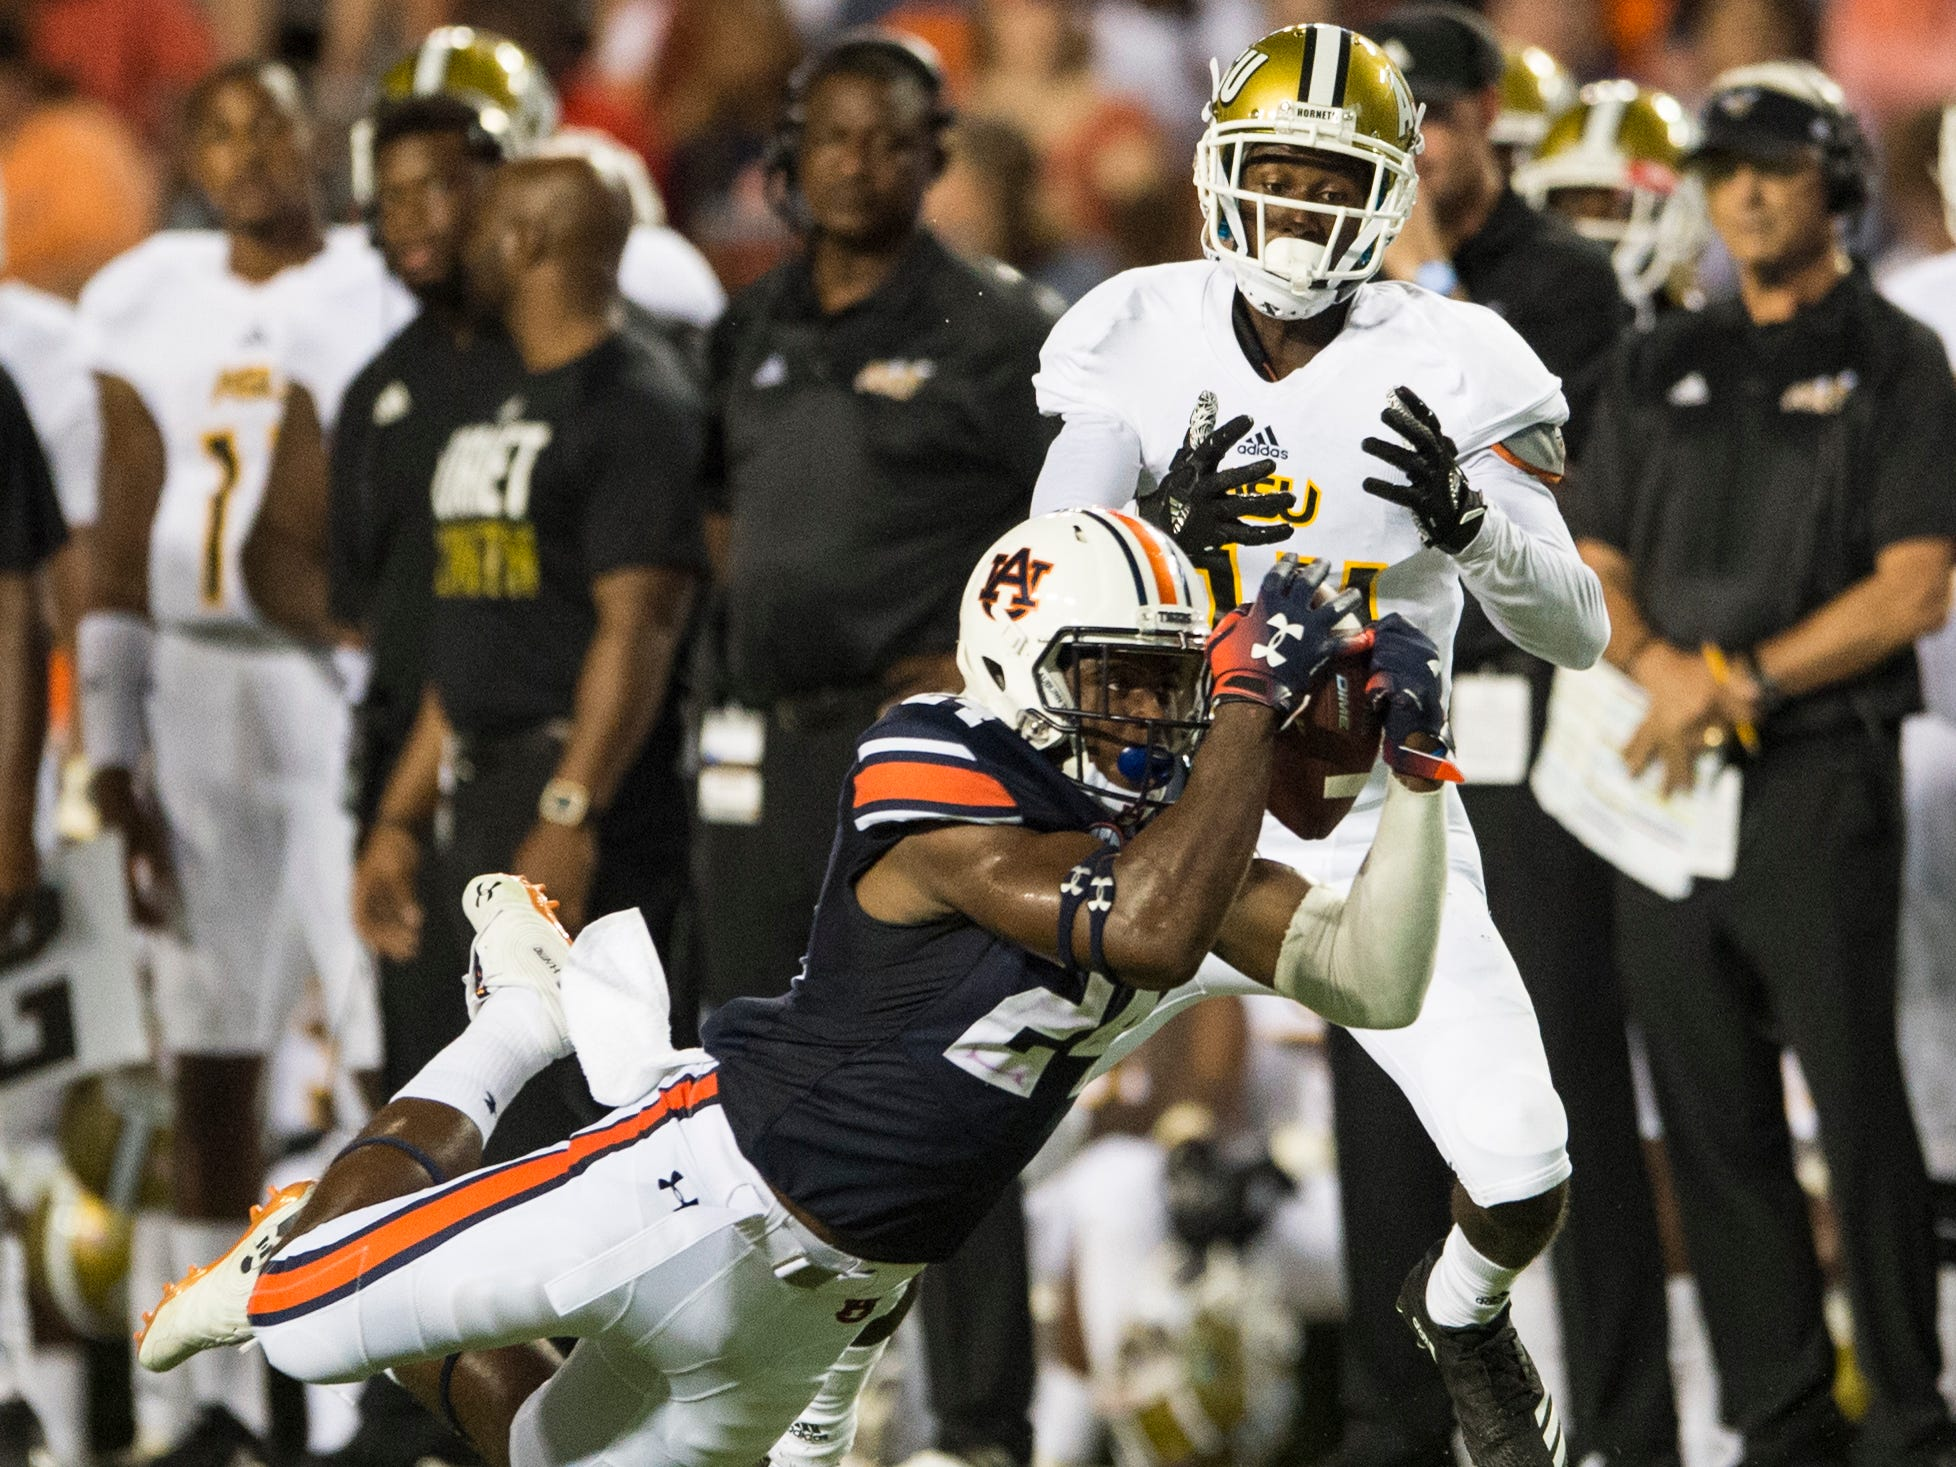 Auburn's Daniel Thomas (24) pulls down an interception against Alabama State at Jordan-Hare Stadium in Auburn, Ala., on Saturday, Sept. 8, 2018. Auburn leads Alabama State 42-2 at halftime.